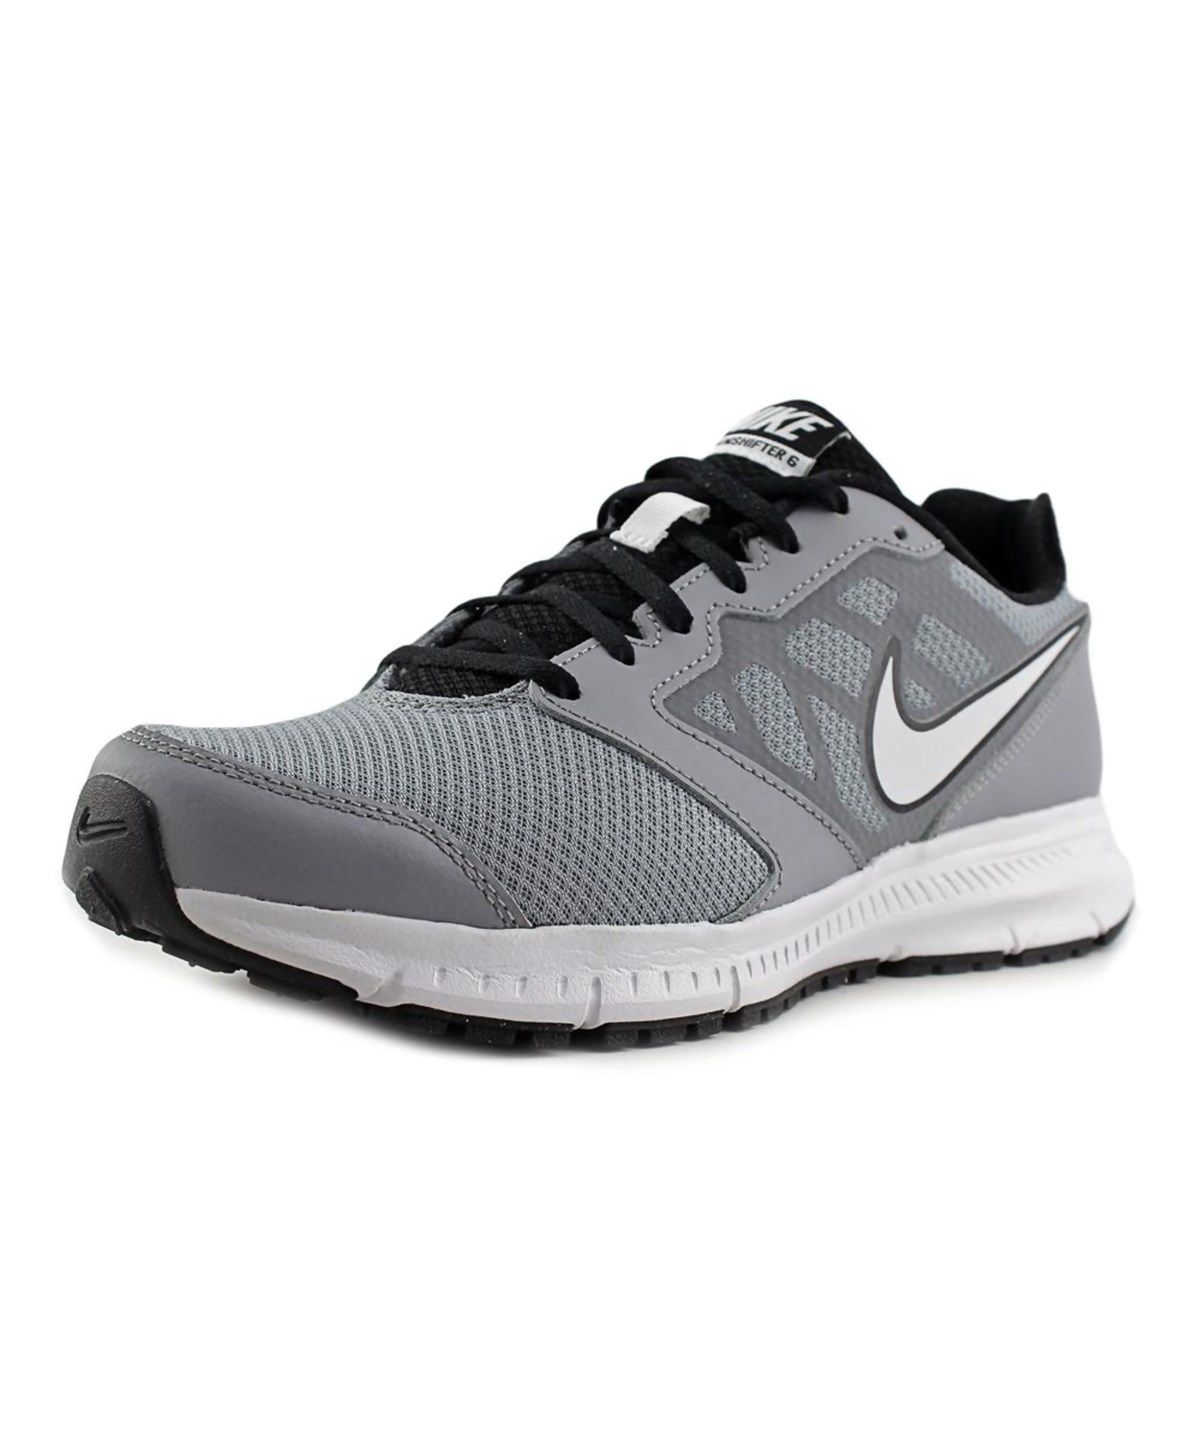 New Nike Downshifter 7 Womens Running Shoes Multi | Running shoes and  Running